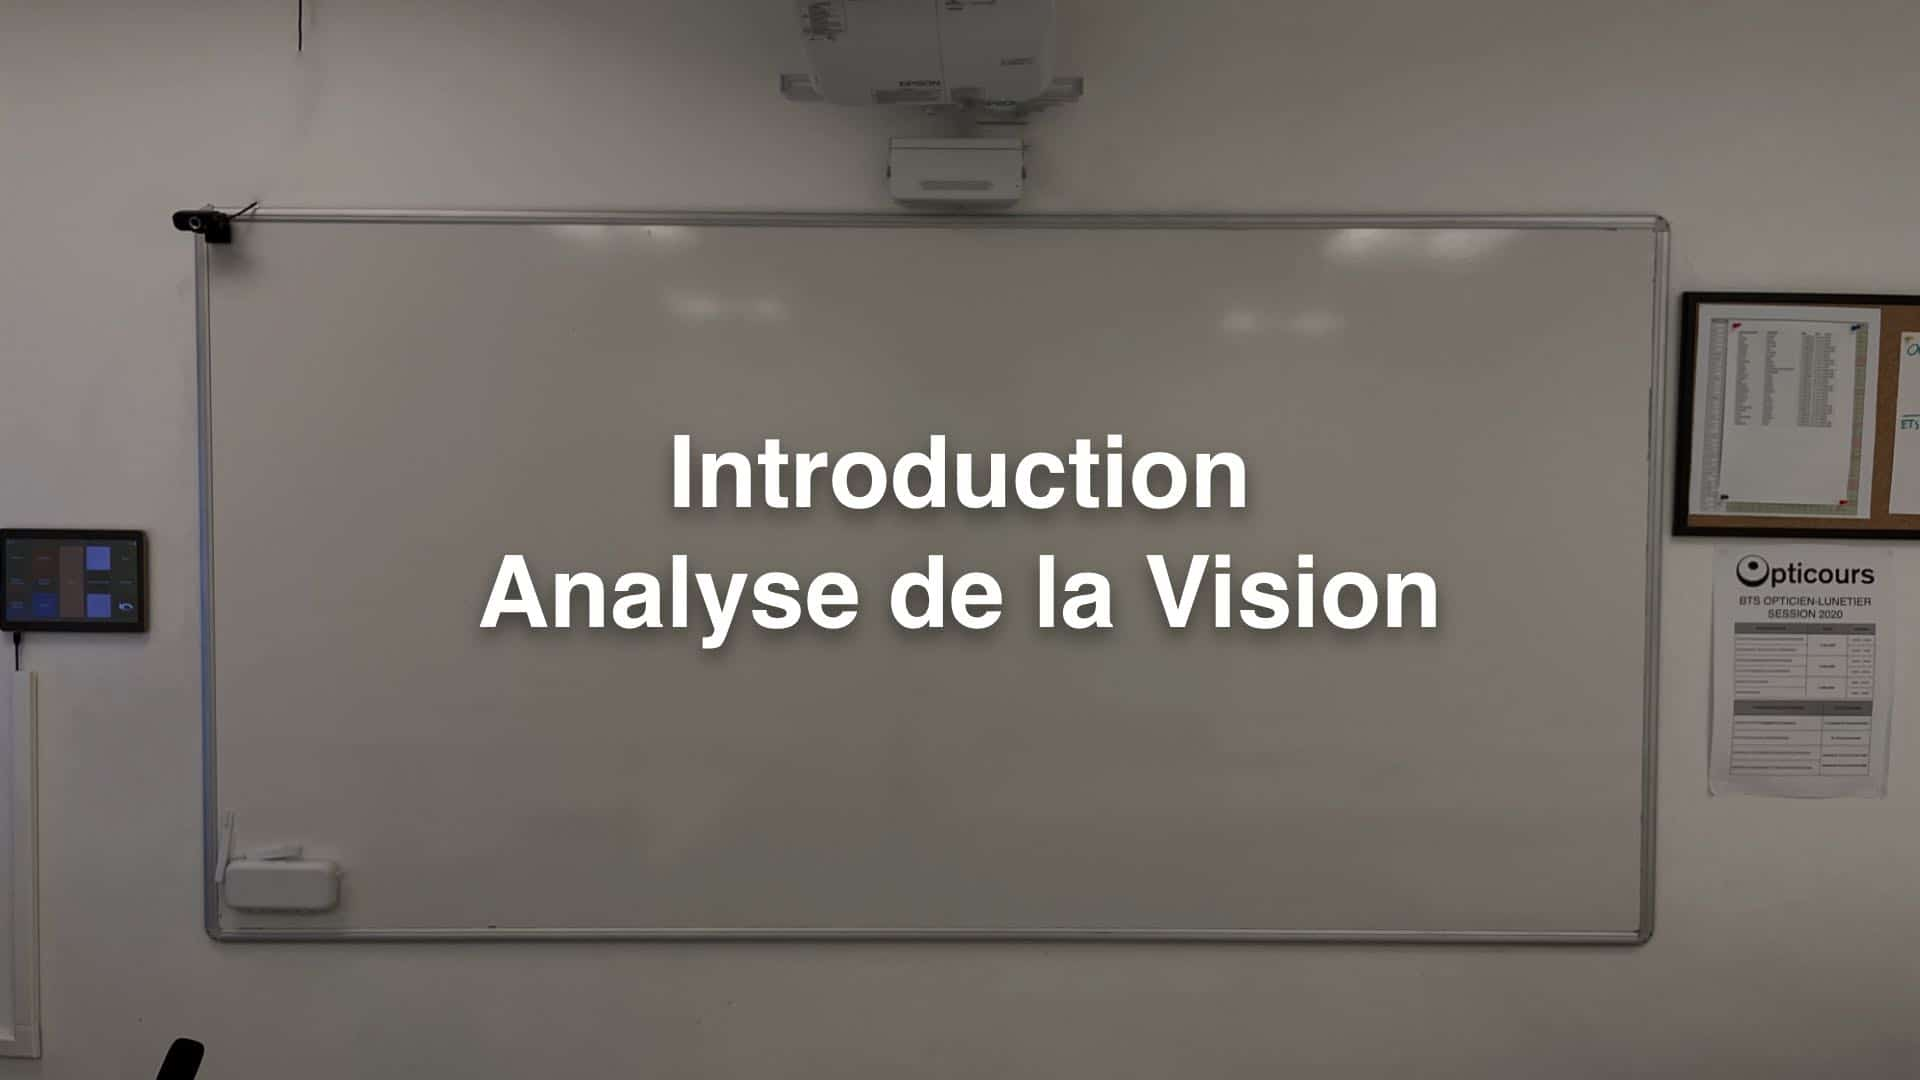 Cours BTS OL Introduction Analyse de la Vision